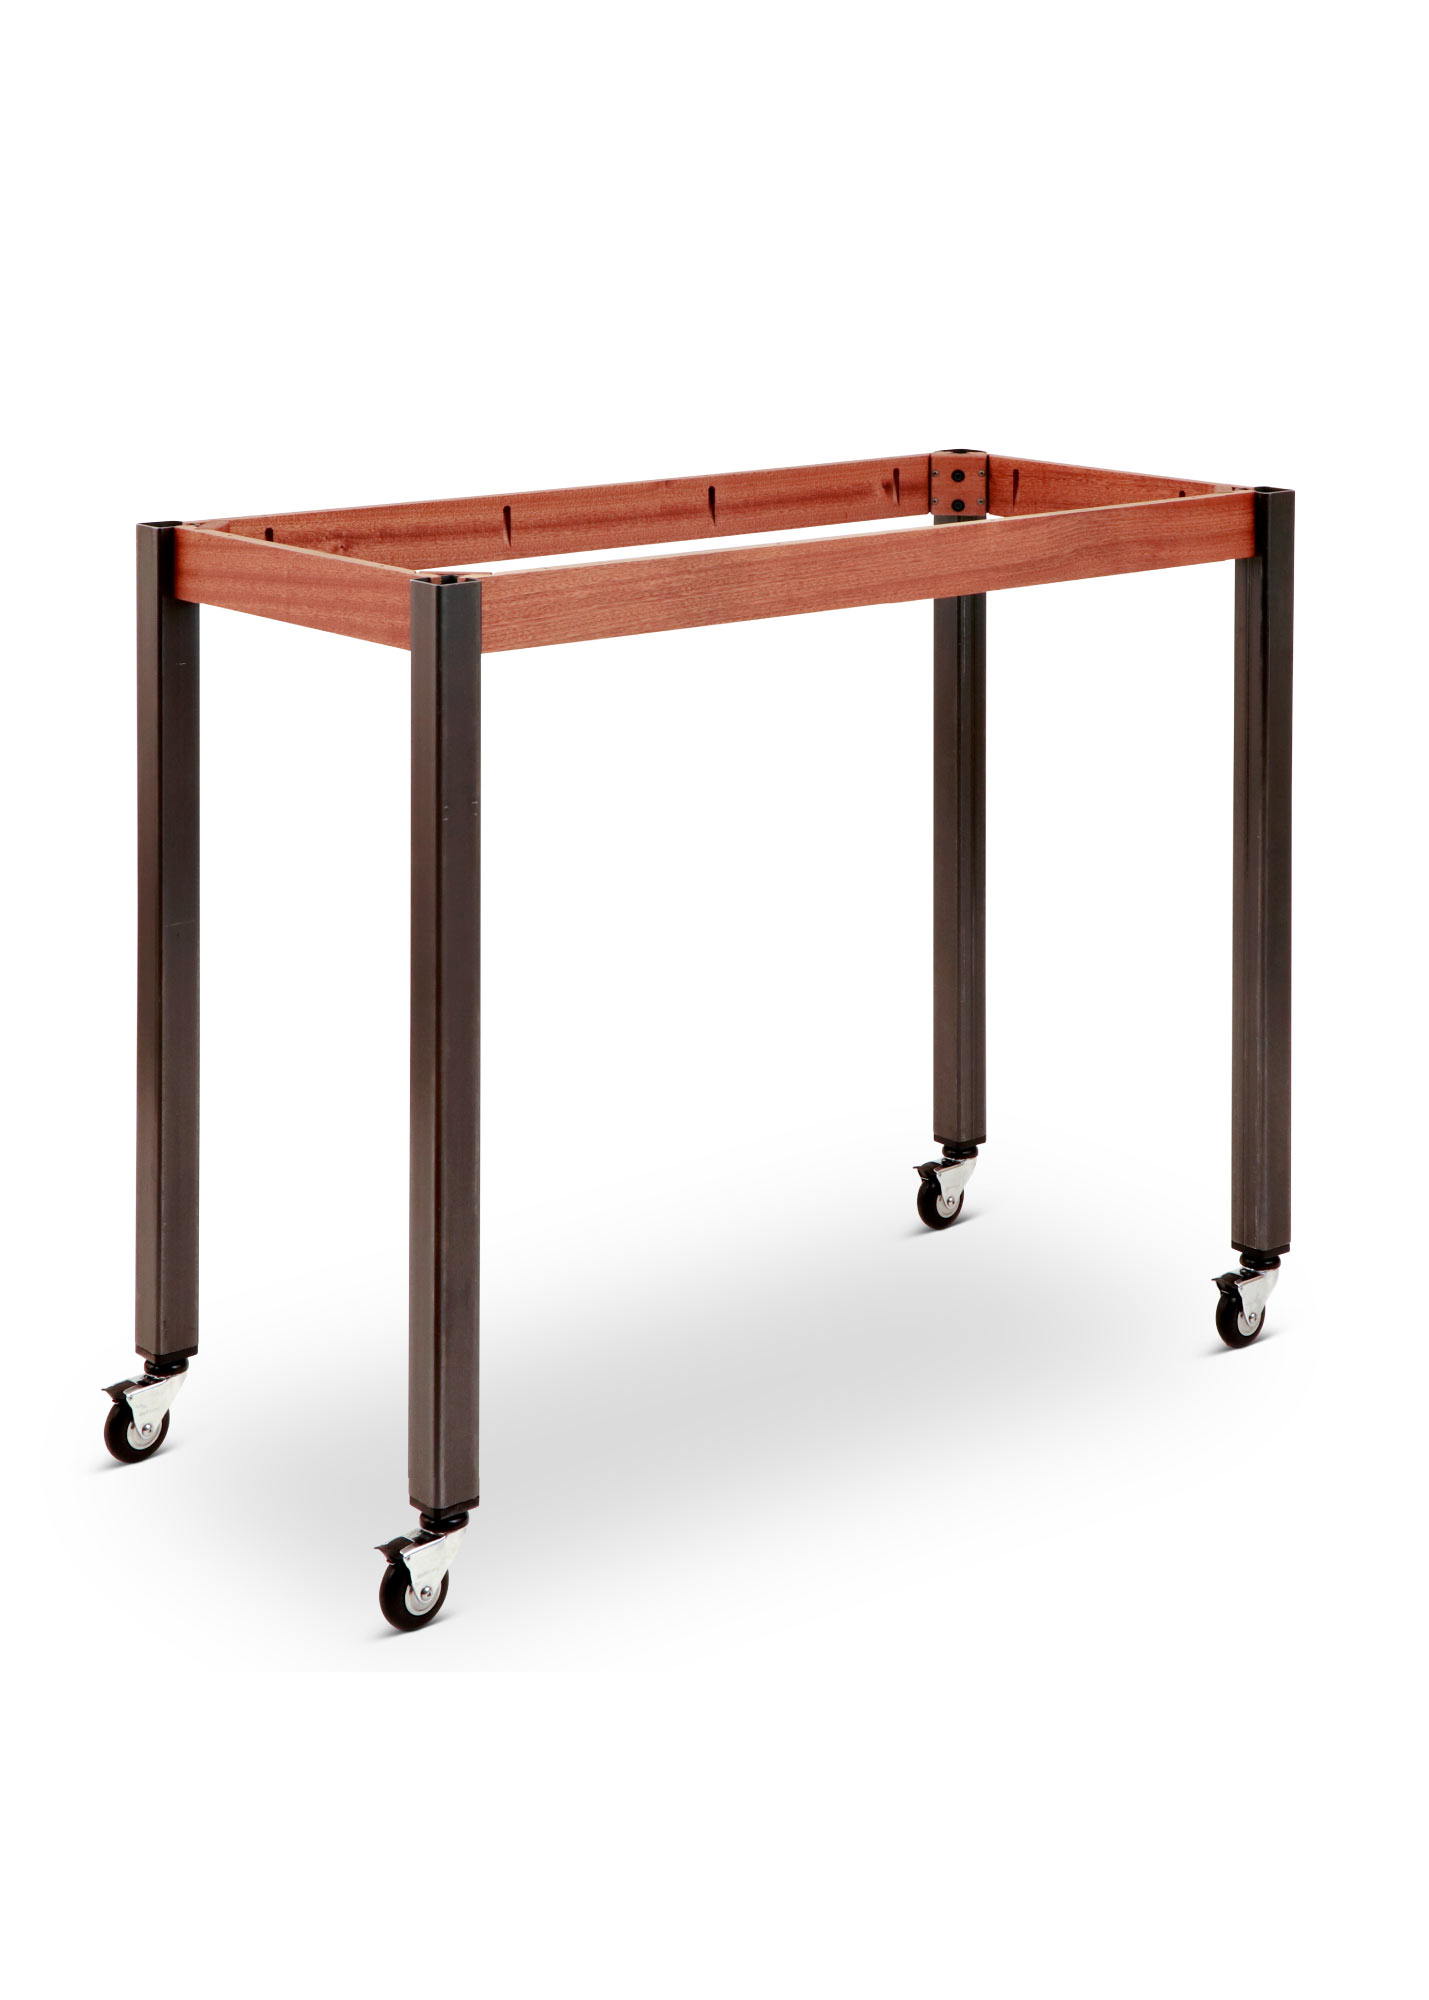 Pleasant Fusion Rolling Work Table Base 32 5 35 Or 39 5 Metal Legs Beutiful Home Inspiration Aditmahrainfo